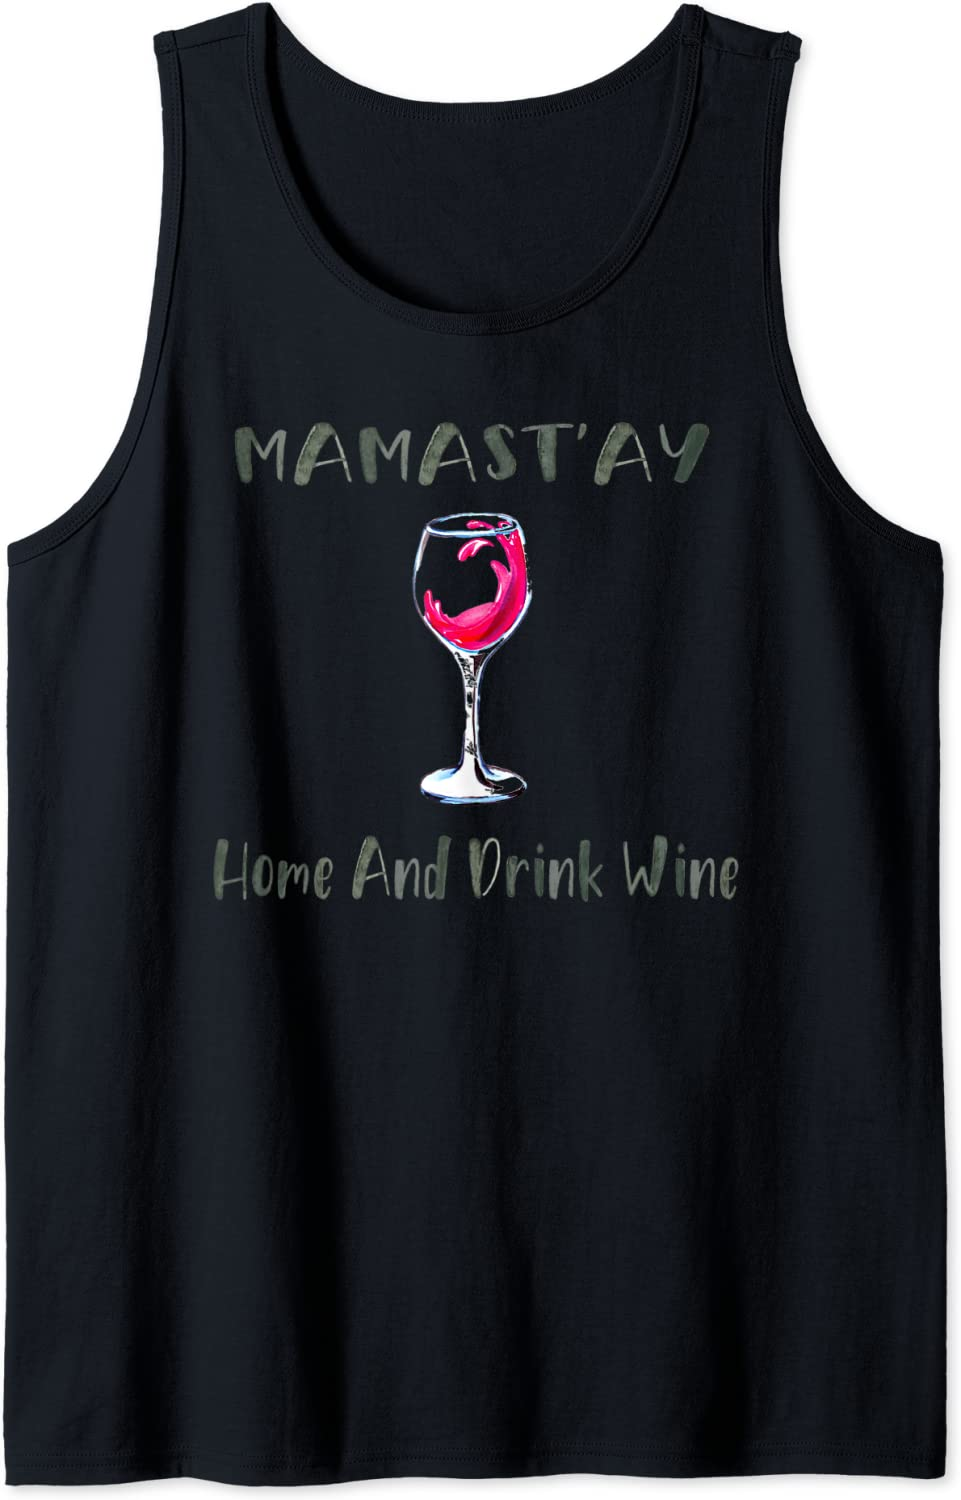 Mamast'ay Home And Drink Wine Funny Yoga Namaste Mothers Day Tank Top